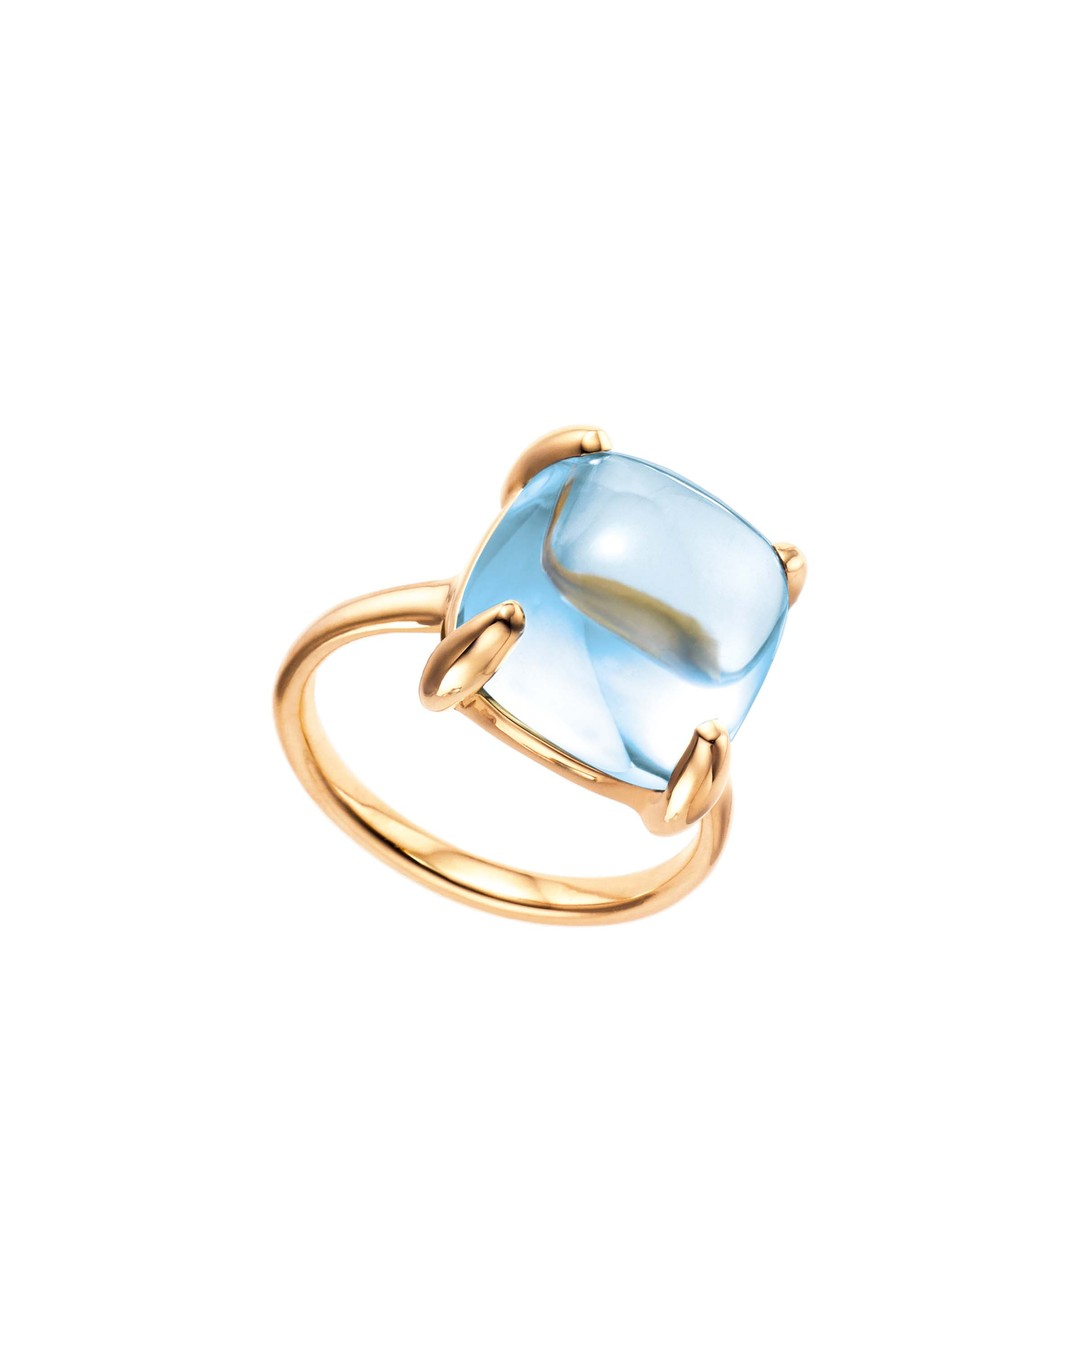 Paloma Picasso for Tiffany Sugar Stacks blue topaz ring in yellow gold from £1,100.